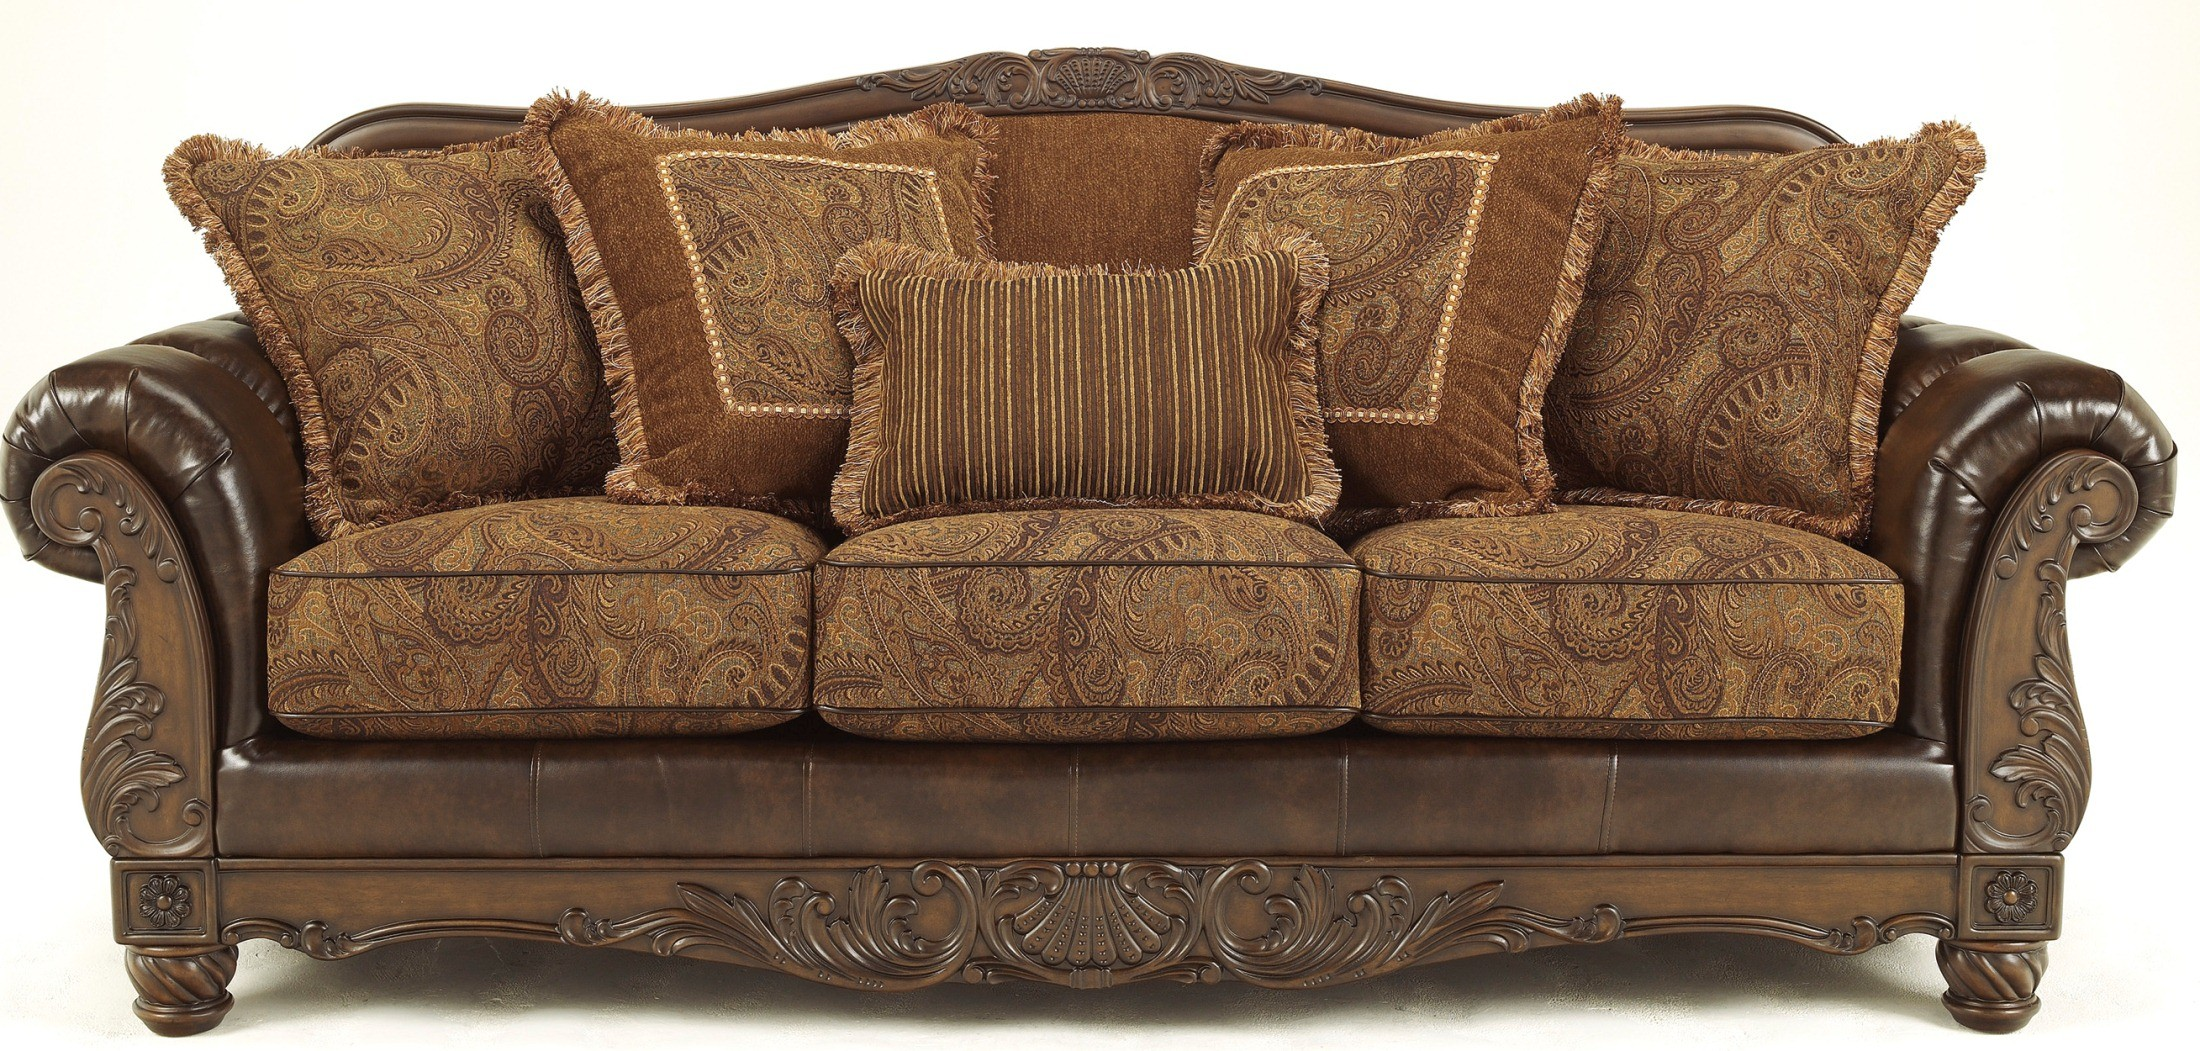 Fresco durablend antique sofa chair living room set from for Front room furniture sale